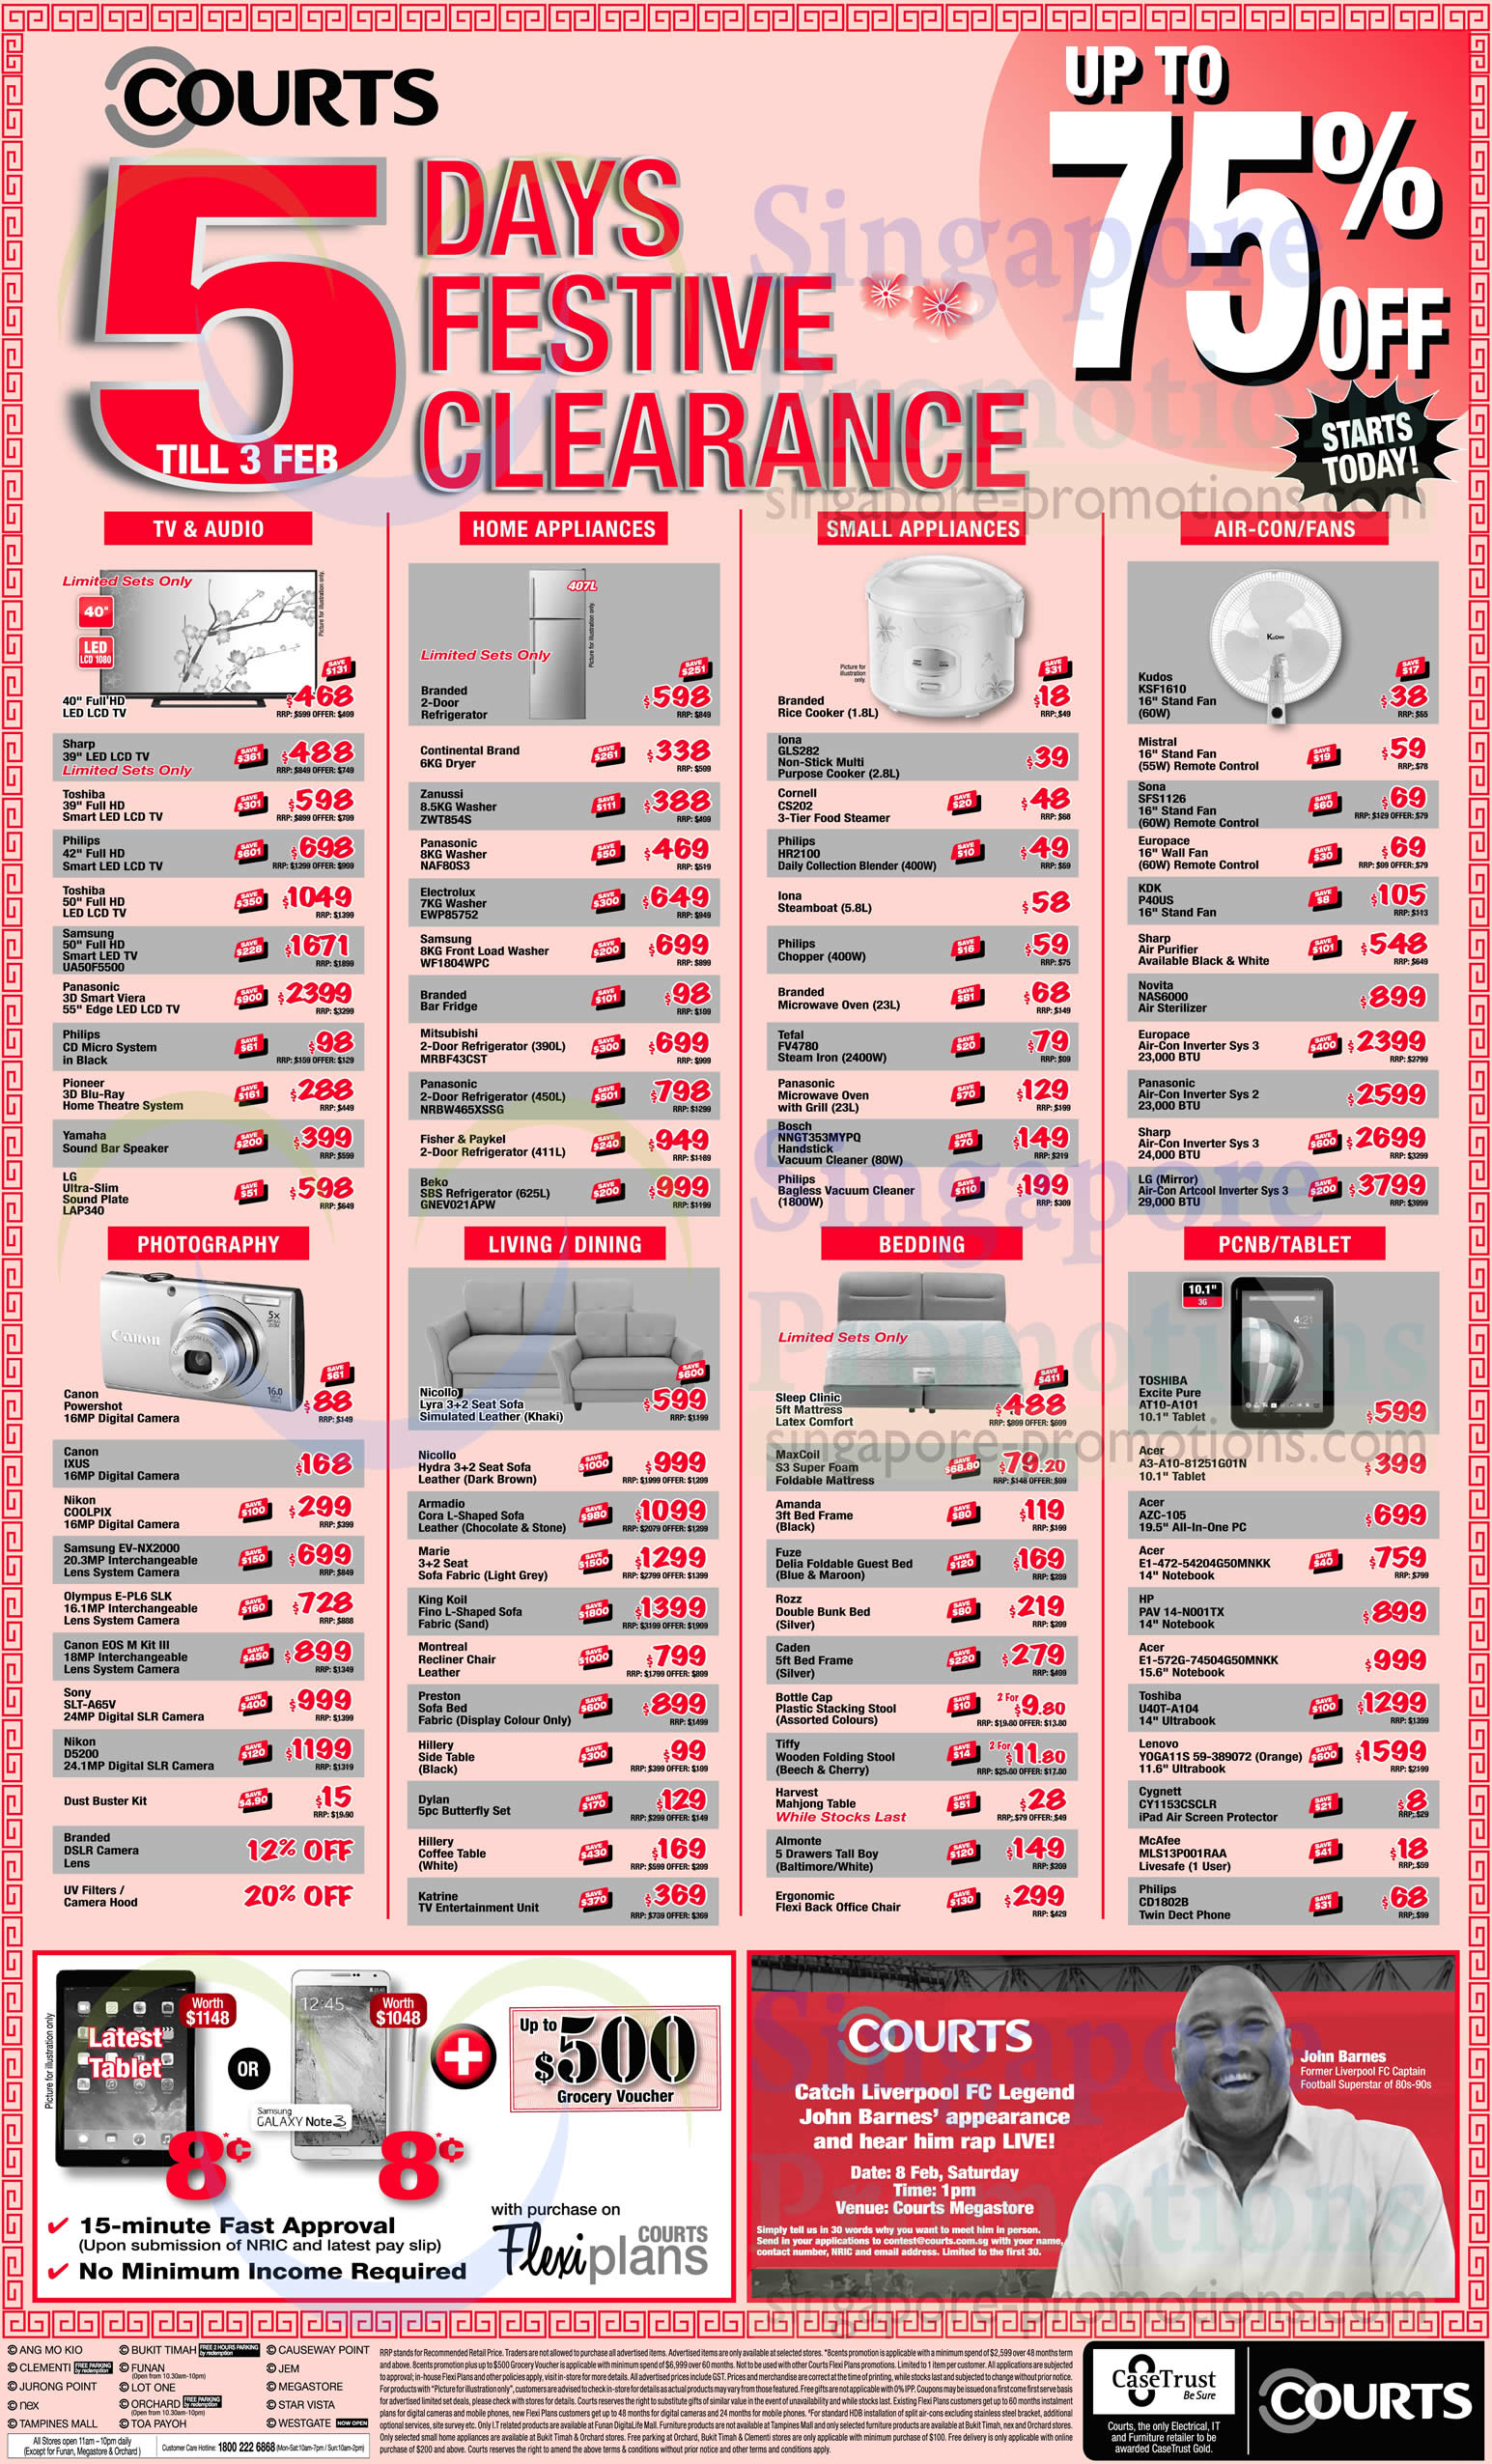 5 Days Festive Clearance Offers 187 Courts Cny 2014 Opening